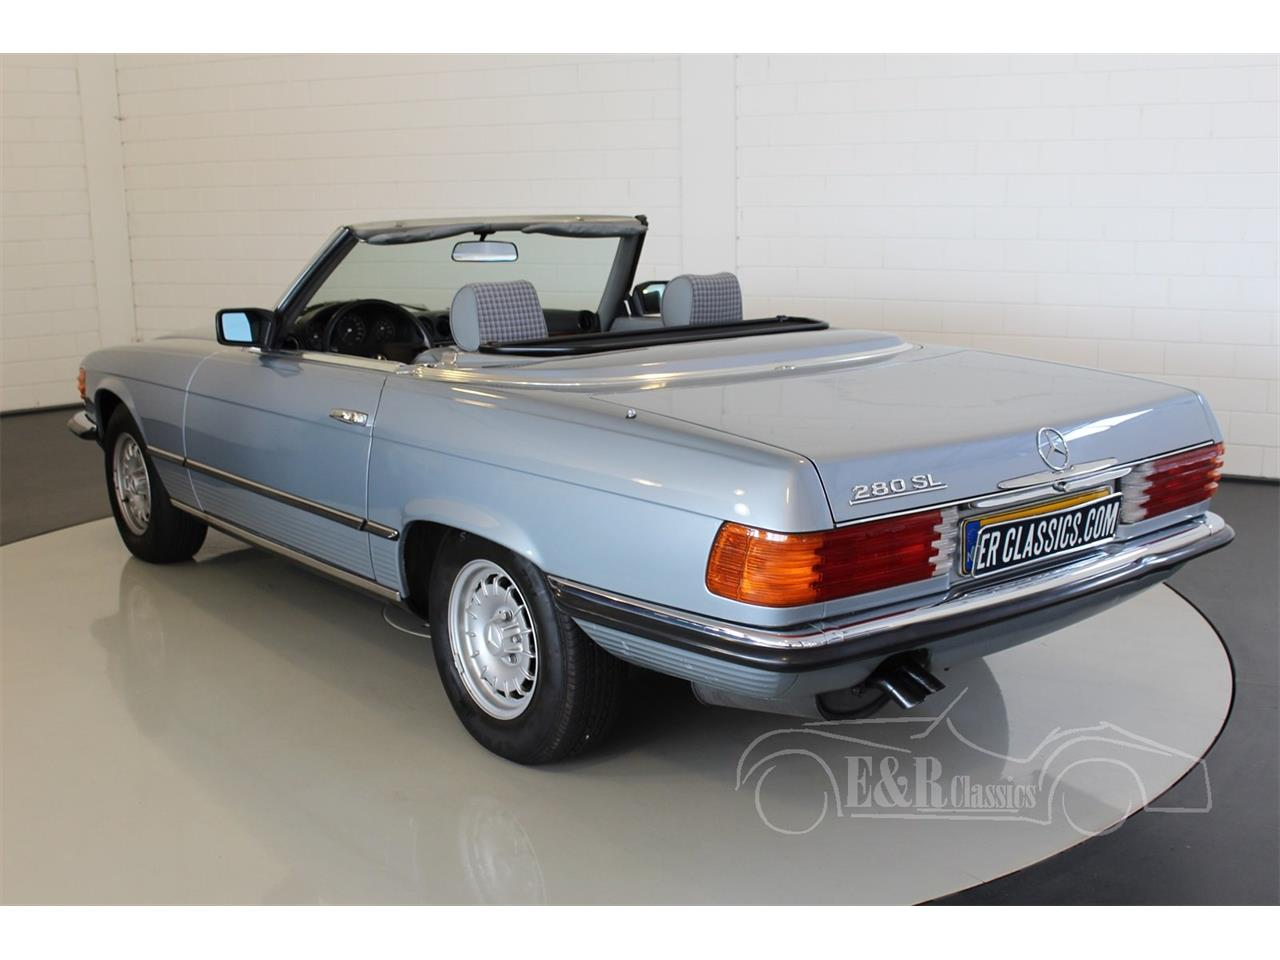 Large Picture of 1983 280SL - $34,150.00 Offered by E & R Classics - QEBS